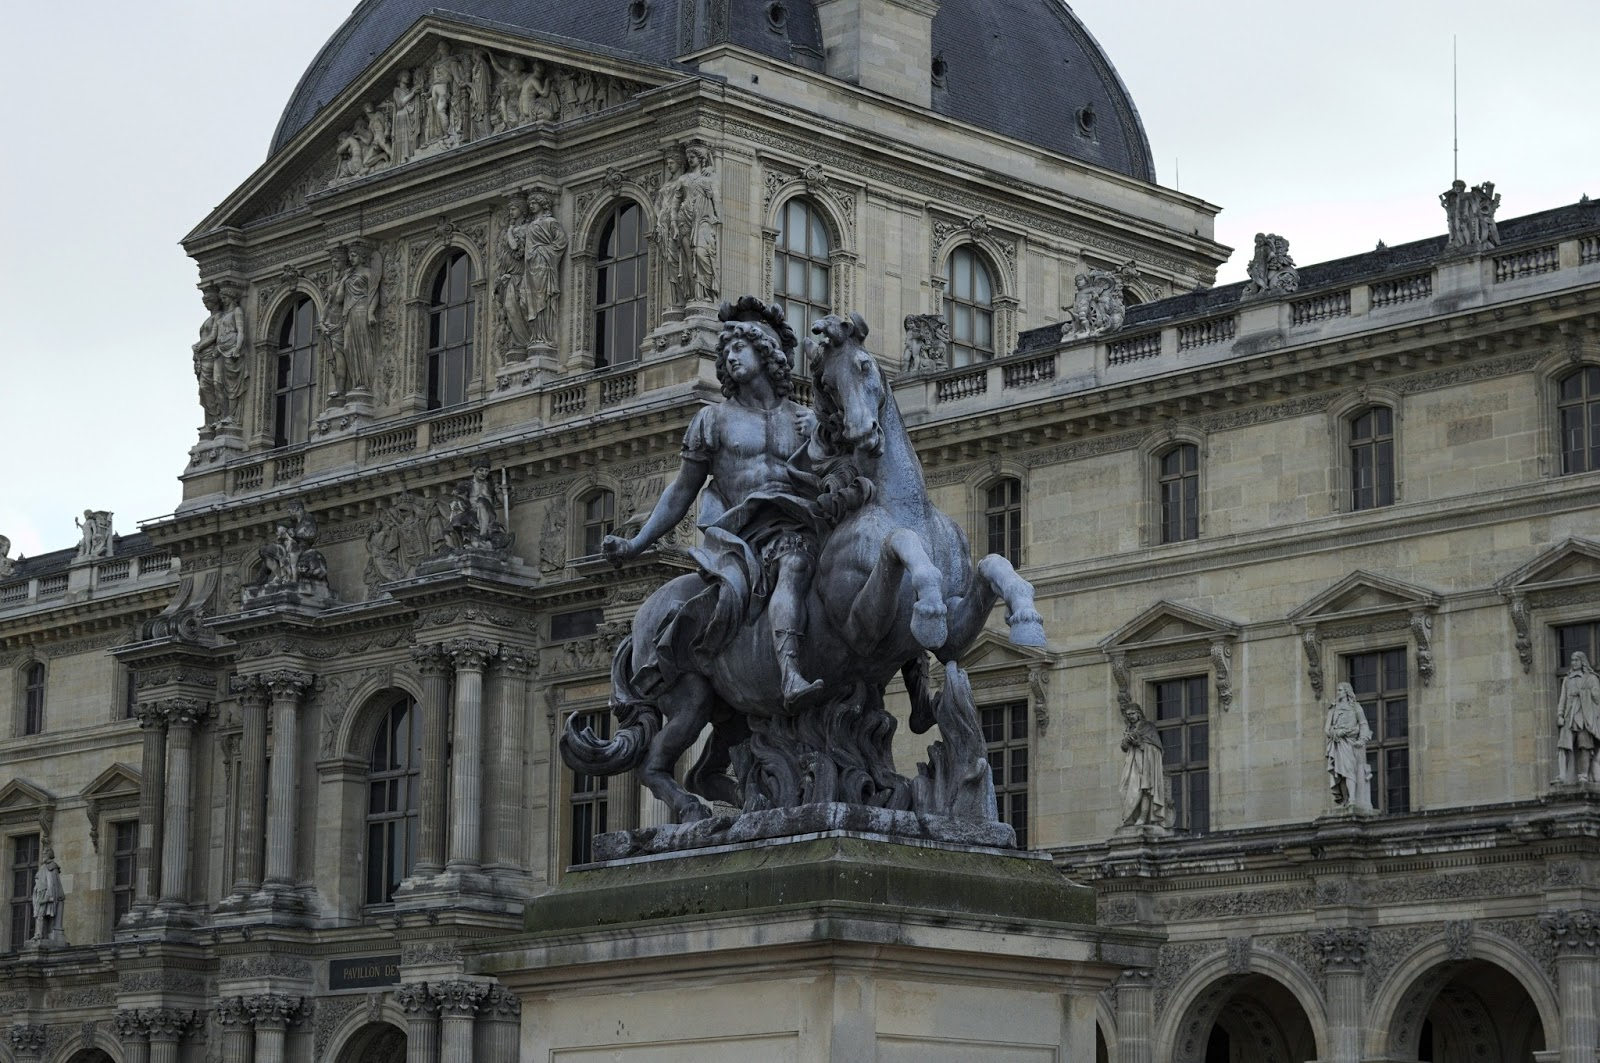 Outside of Louvre museum.